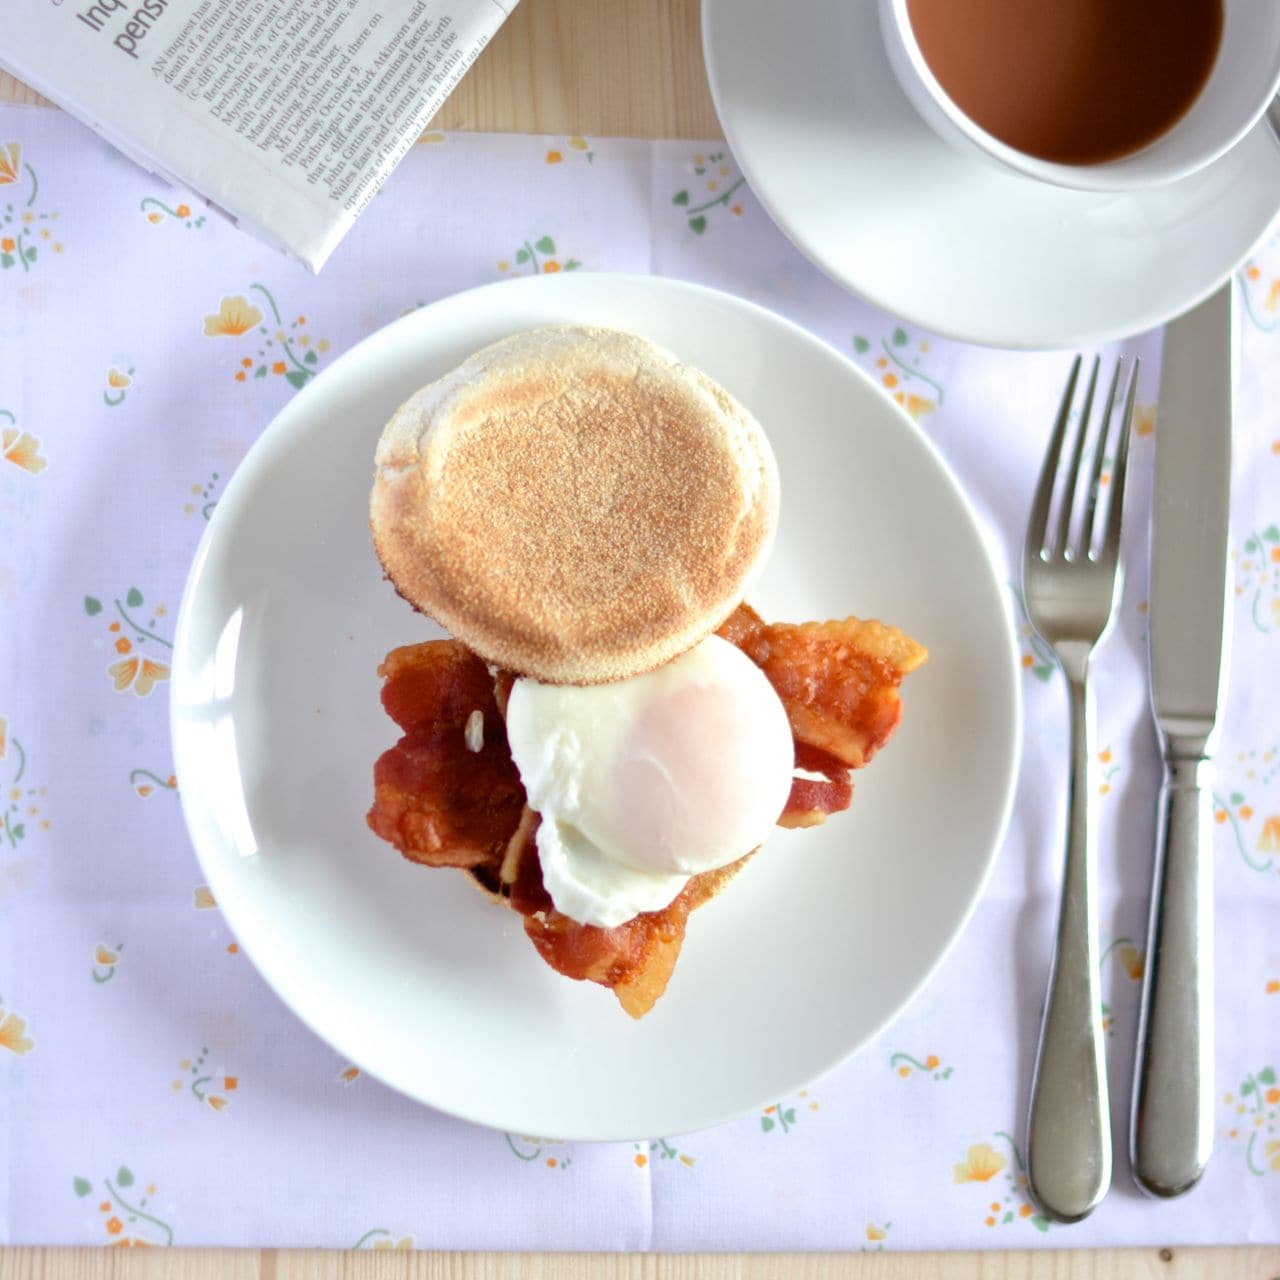 Step-by-step guide to the perfect poached egg